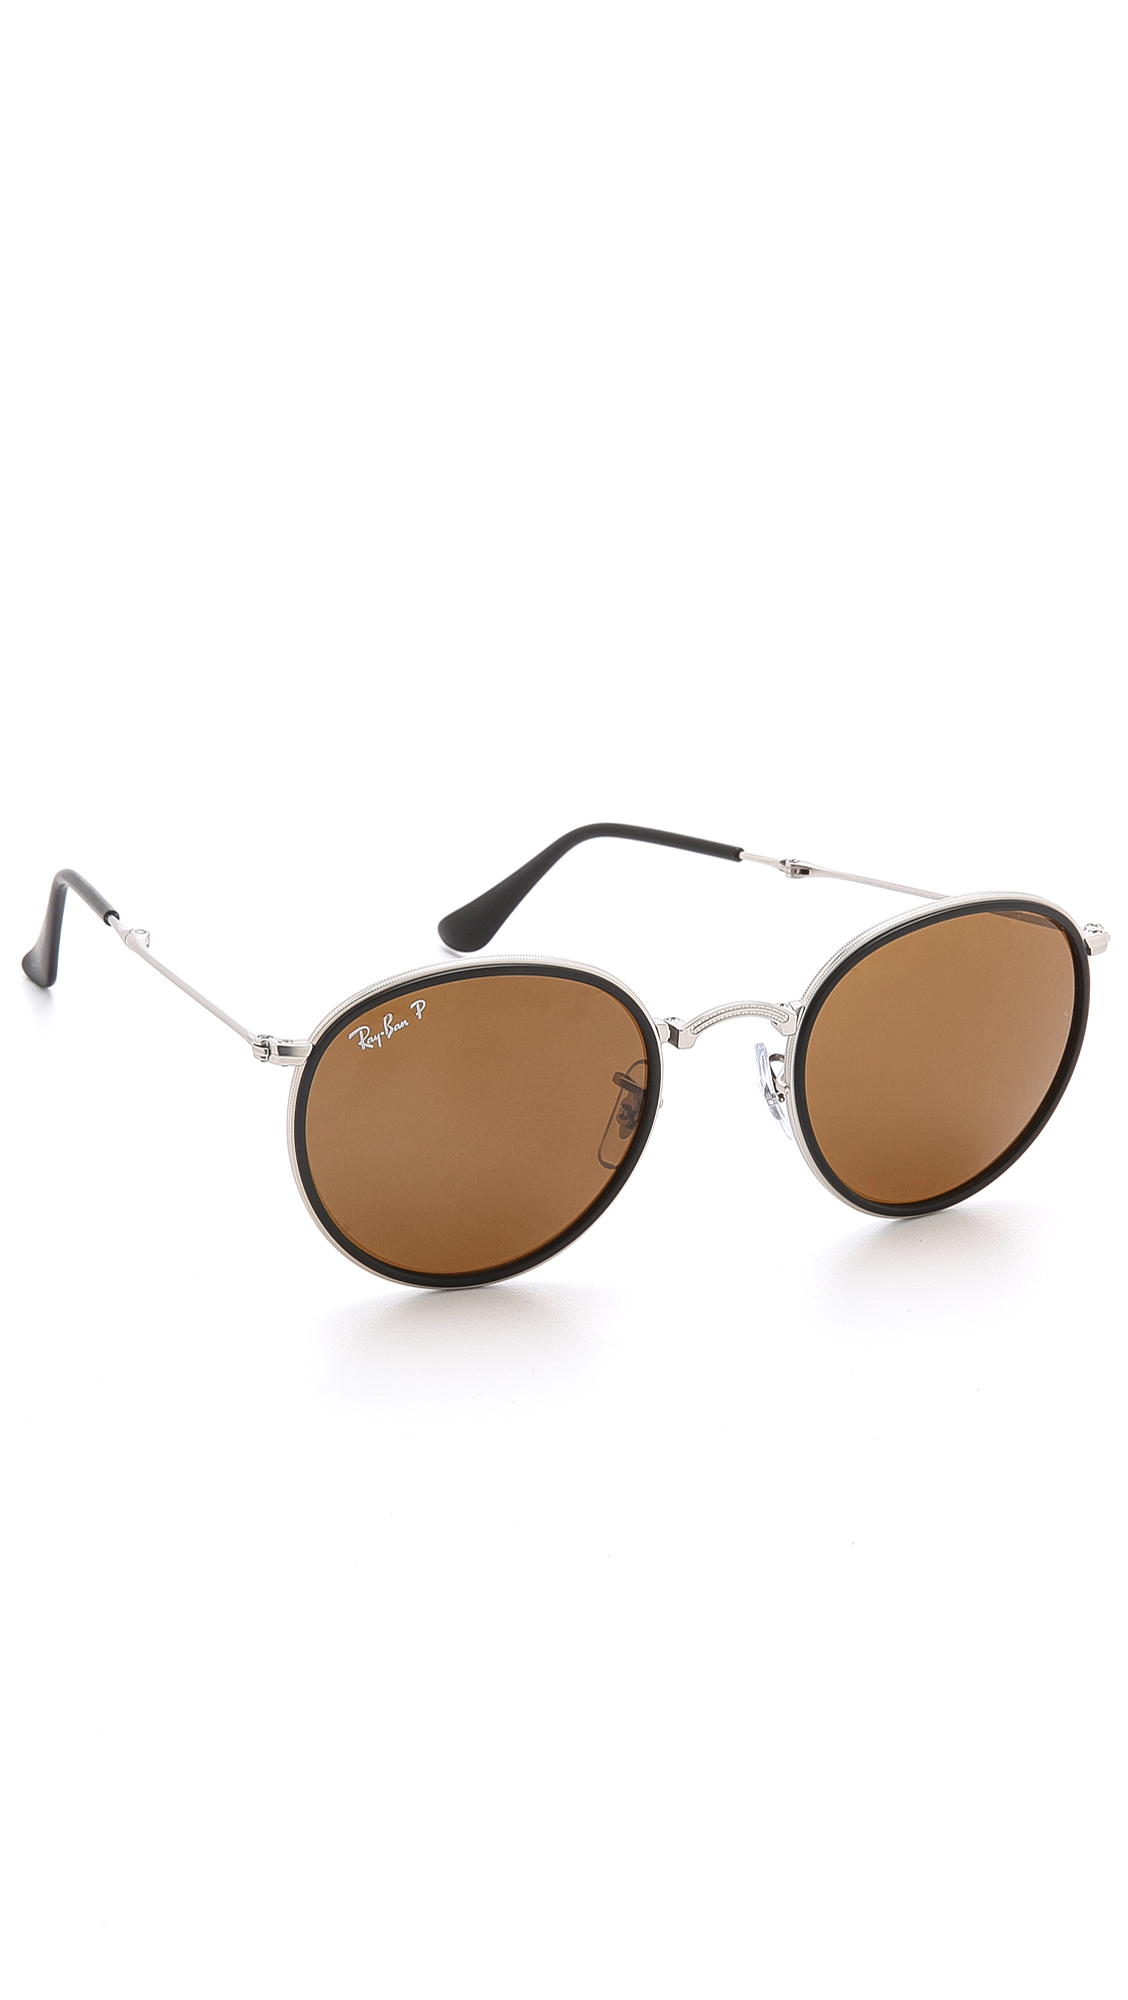 668f5d7c27 Ray Ban Round Metal Polarized Silver « Heritage Malta